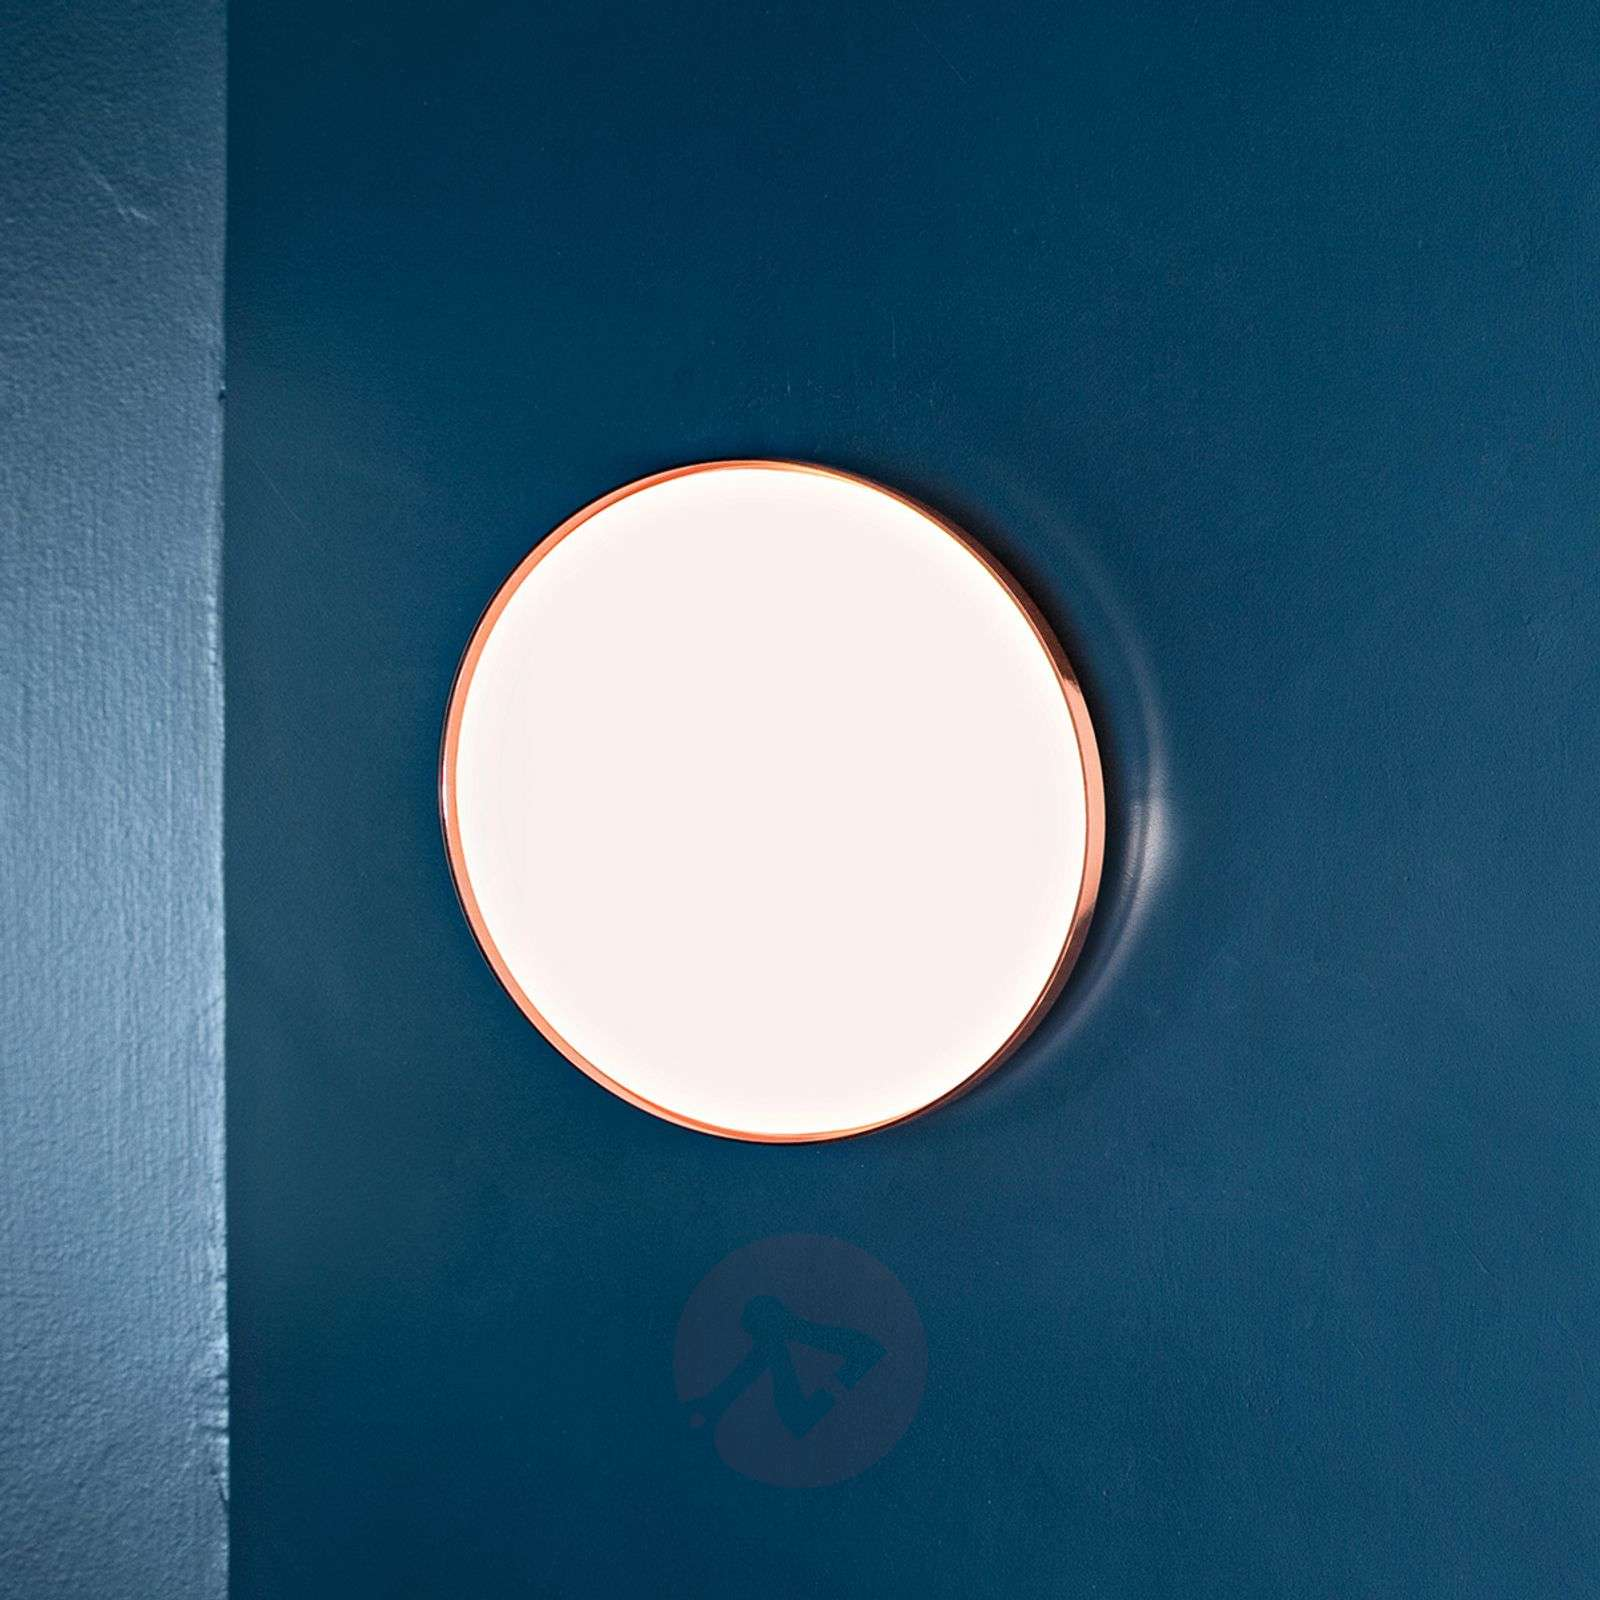 clara flat led ceiling light with a copper ring. Black Bedroom Furniture Sets. Home Design Ideas